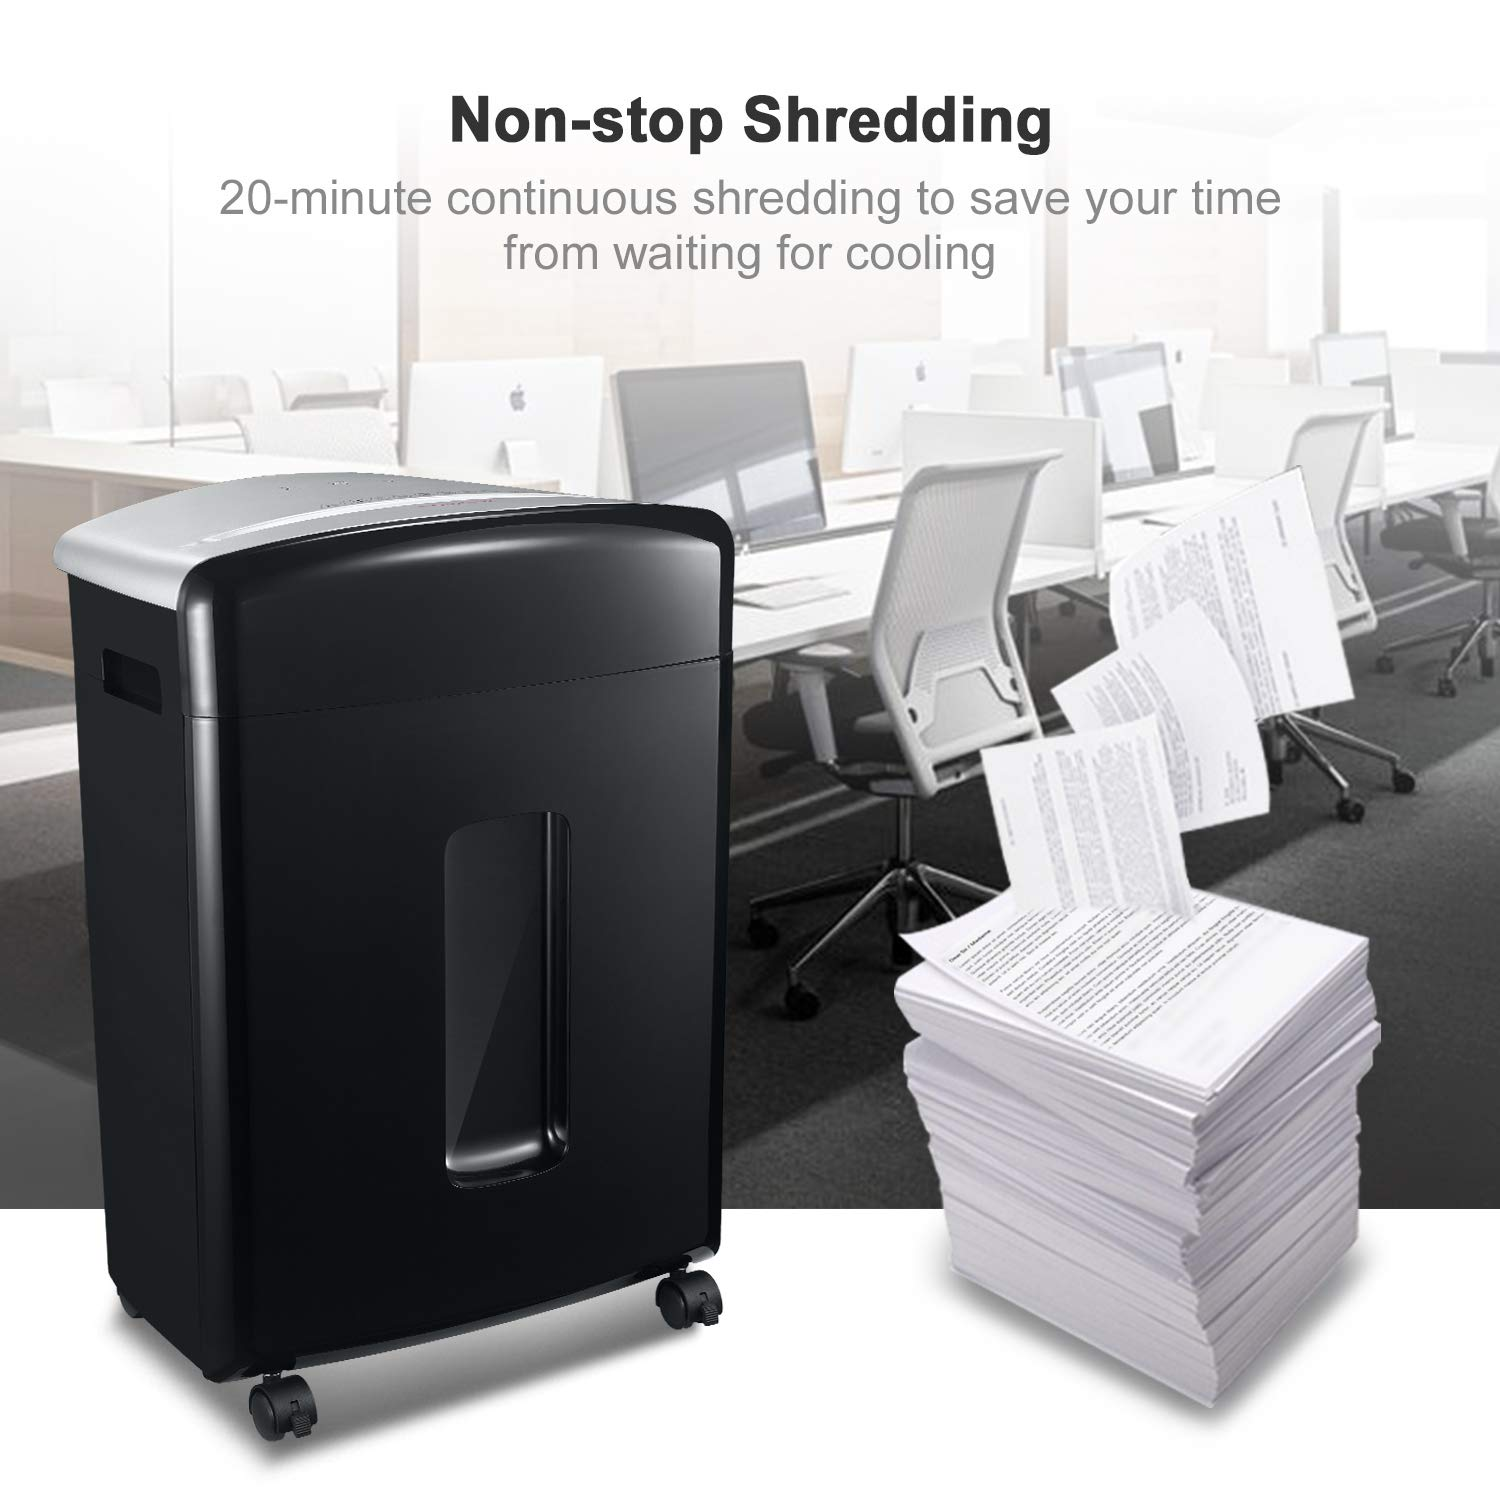 Bonsaii 16-Sheet Micro-Cut Paper/CD/Credit Card Shredder, 20 Minutes Running Time, 60 dB Low Operation Noise, 6.6 Gallons Basket and 4 Casters (C222-B) by bonsaii (Image #4)